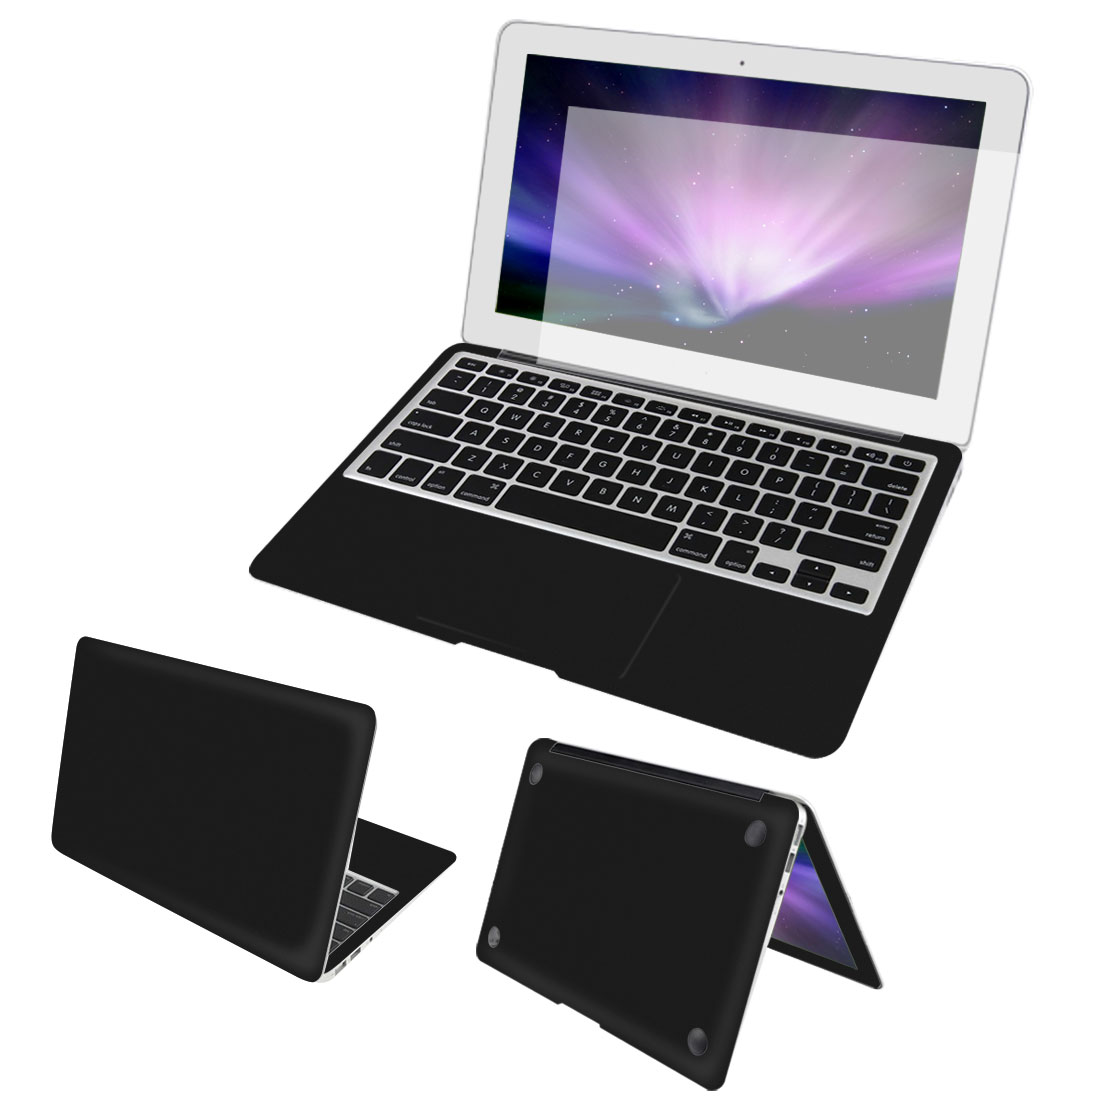 Black Full Body Wrap Protector Decal Skin Screen Guard Dust Stopper for Macbook Air 13""